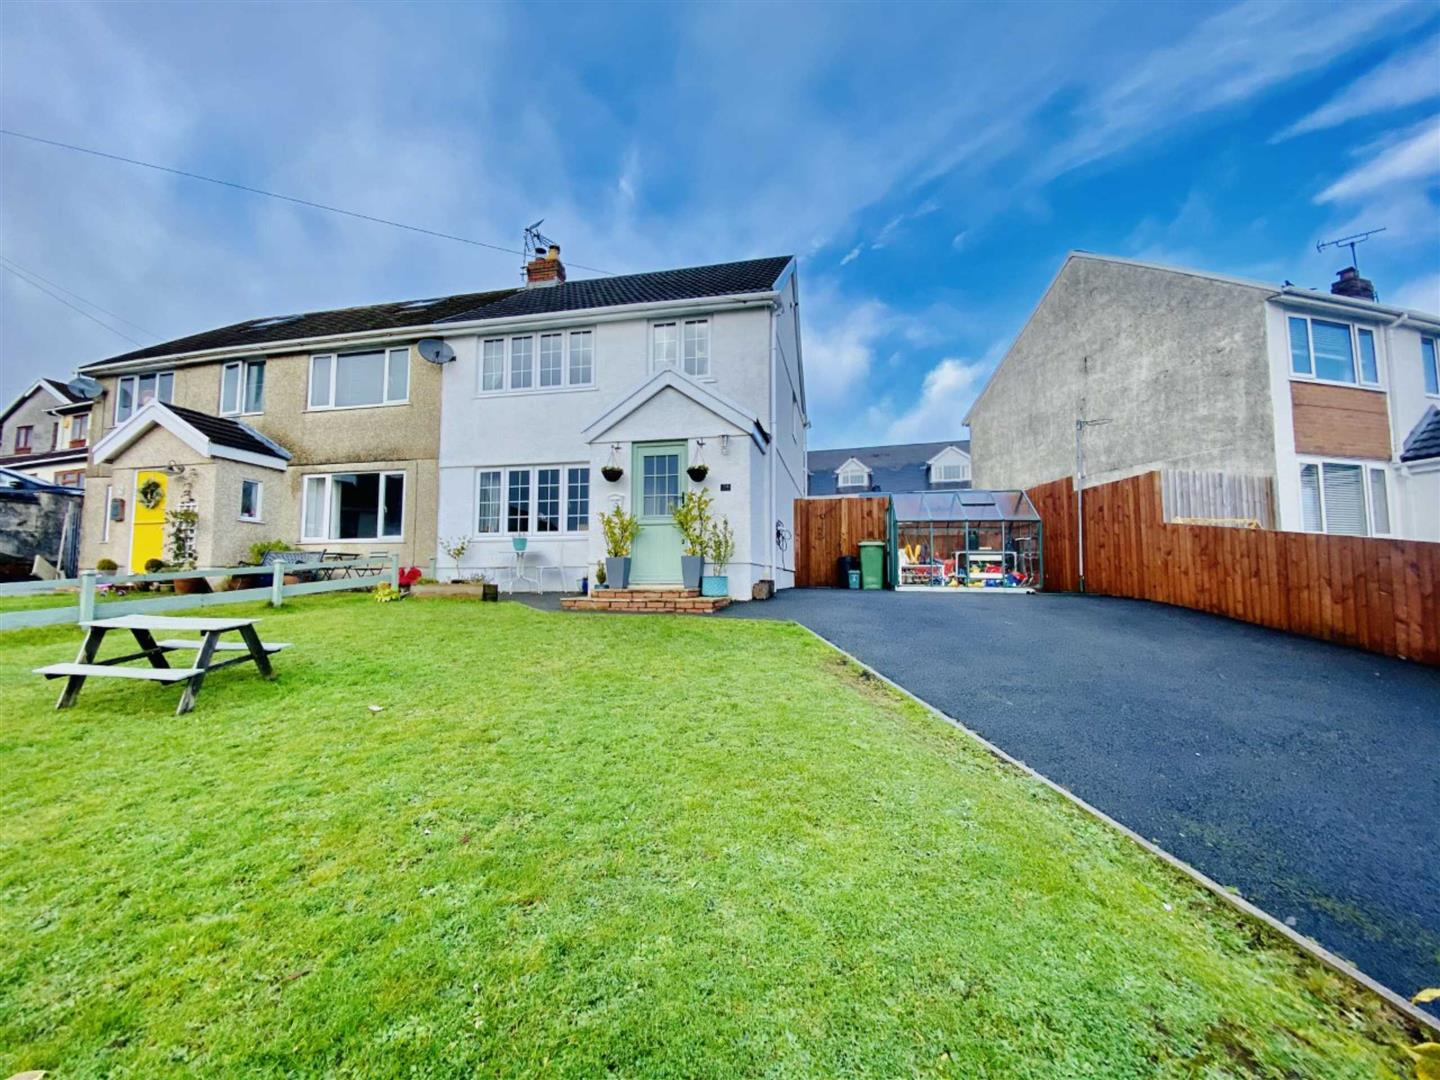 Priors Way, Dunvant, Swansea, SA2 7UJ